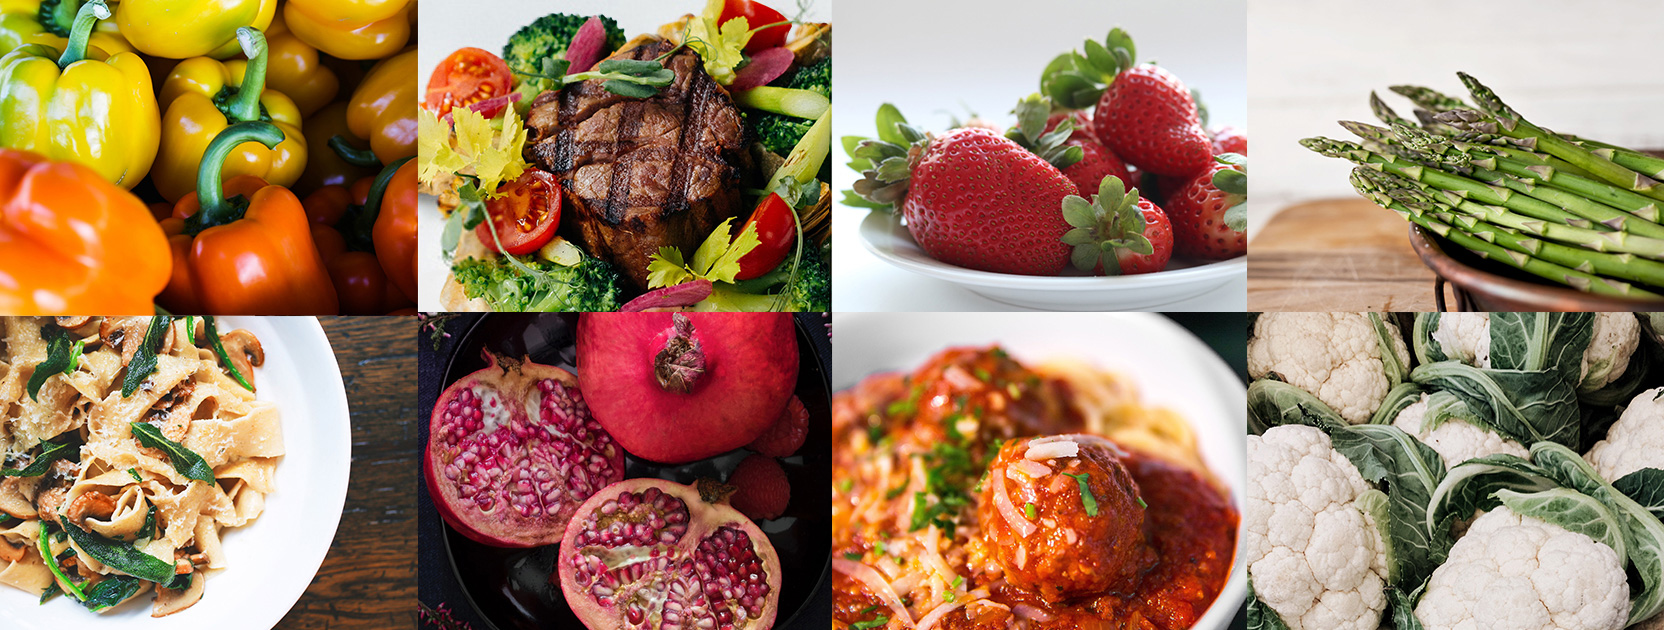 A collage of fresh produce, grilled steak, and pasta dishes.